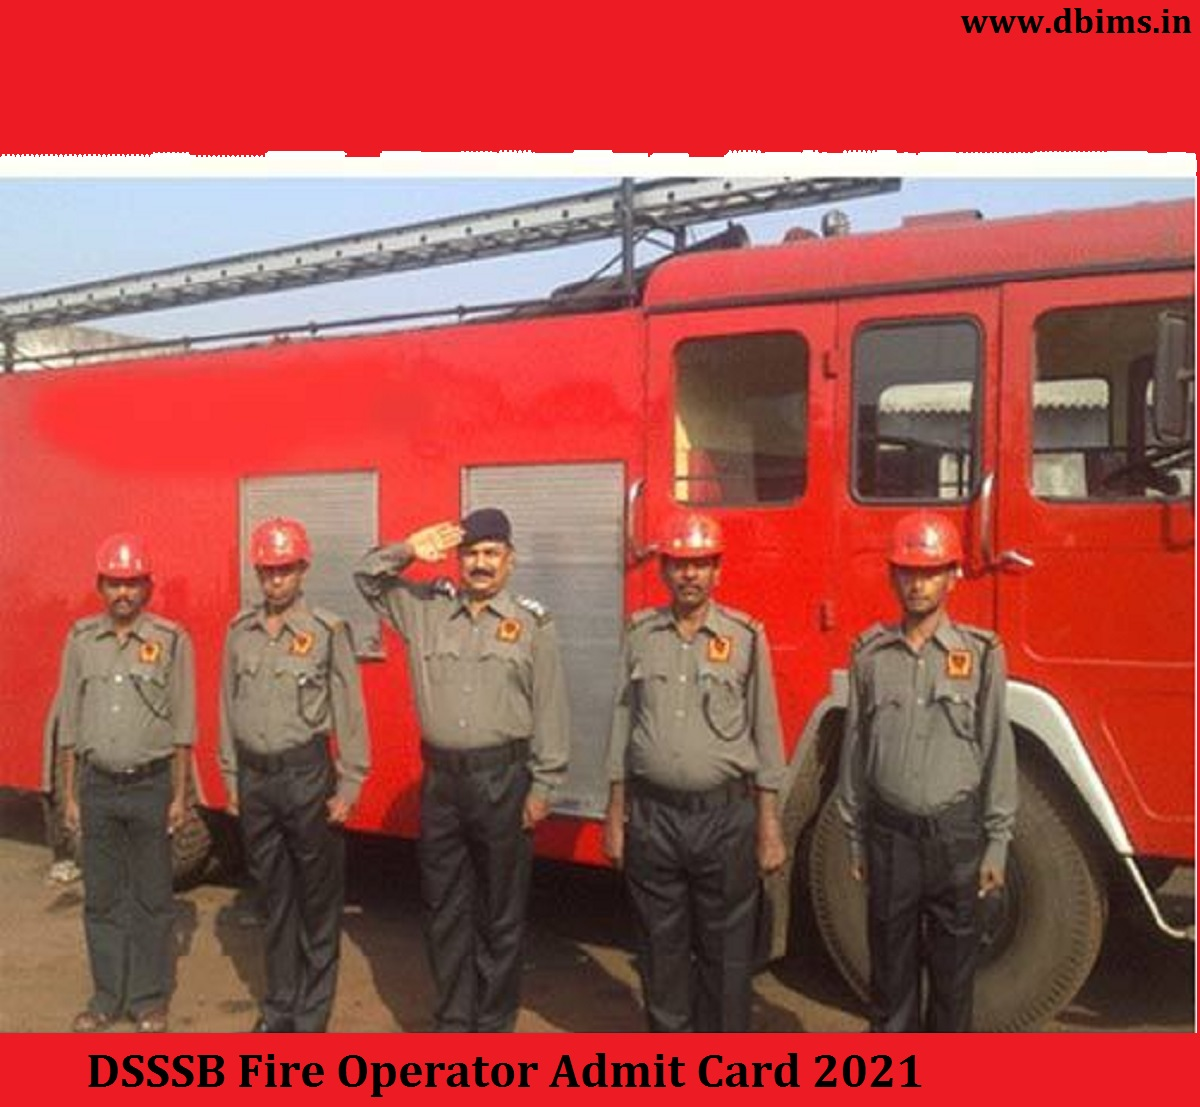 DSSSB Fire Operator Admit Card 2021